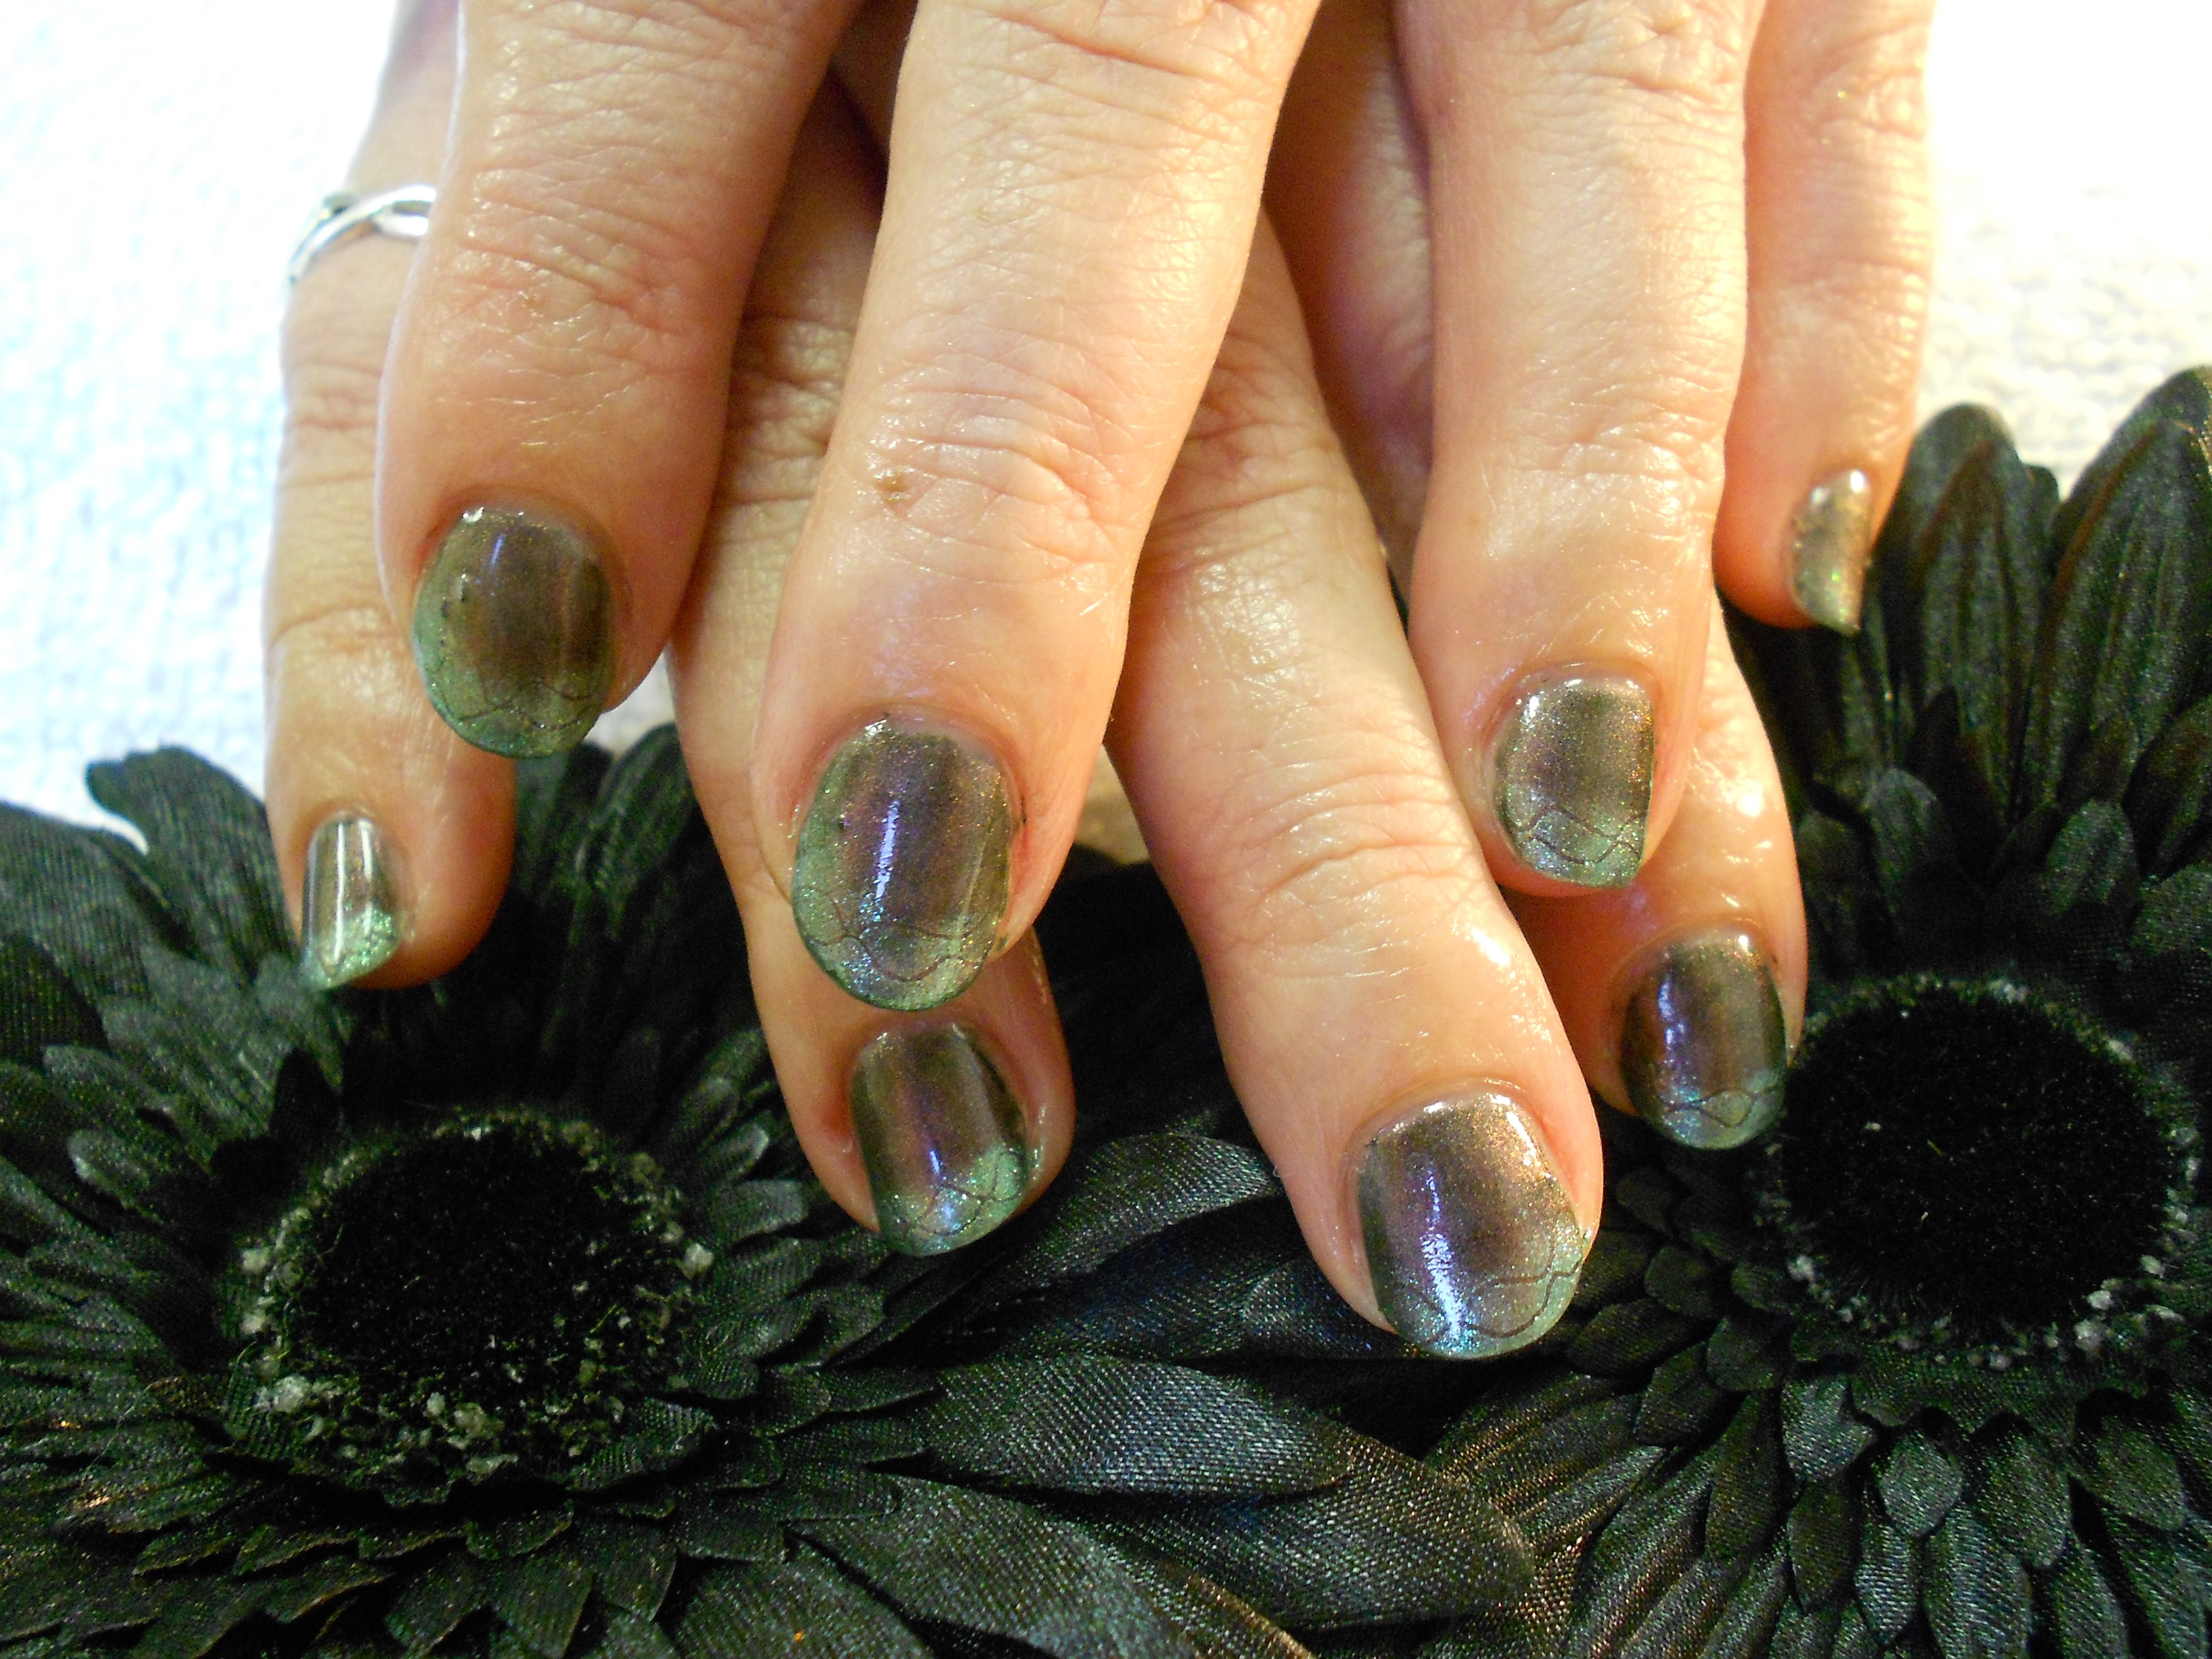 Shellac additives and etching by April Brucker